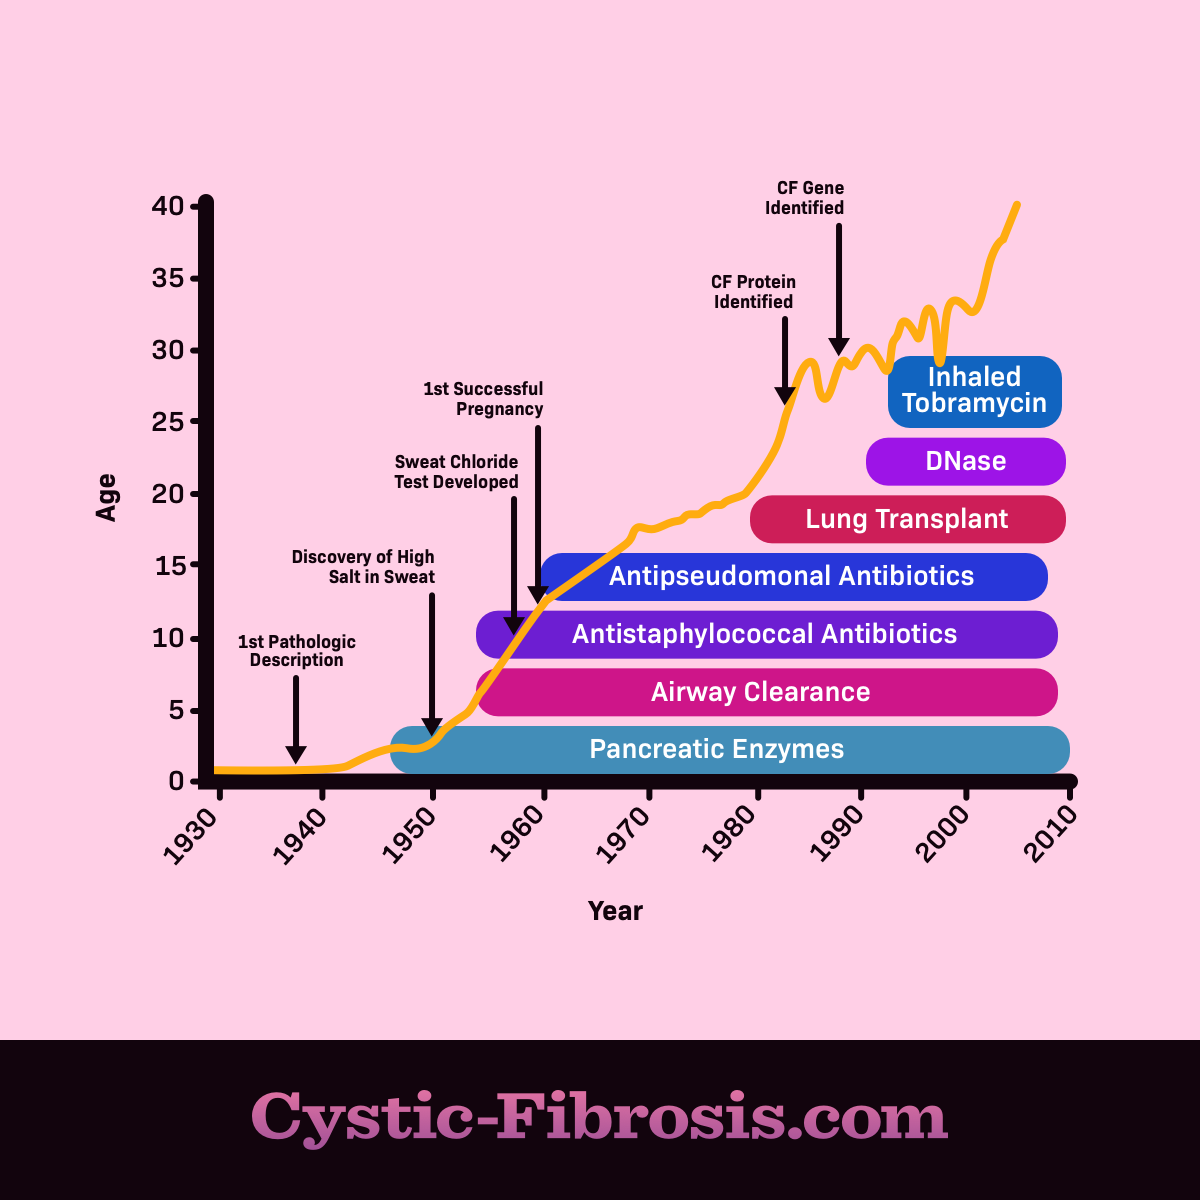 cystic fibrosis life expectancy